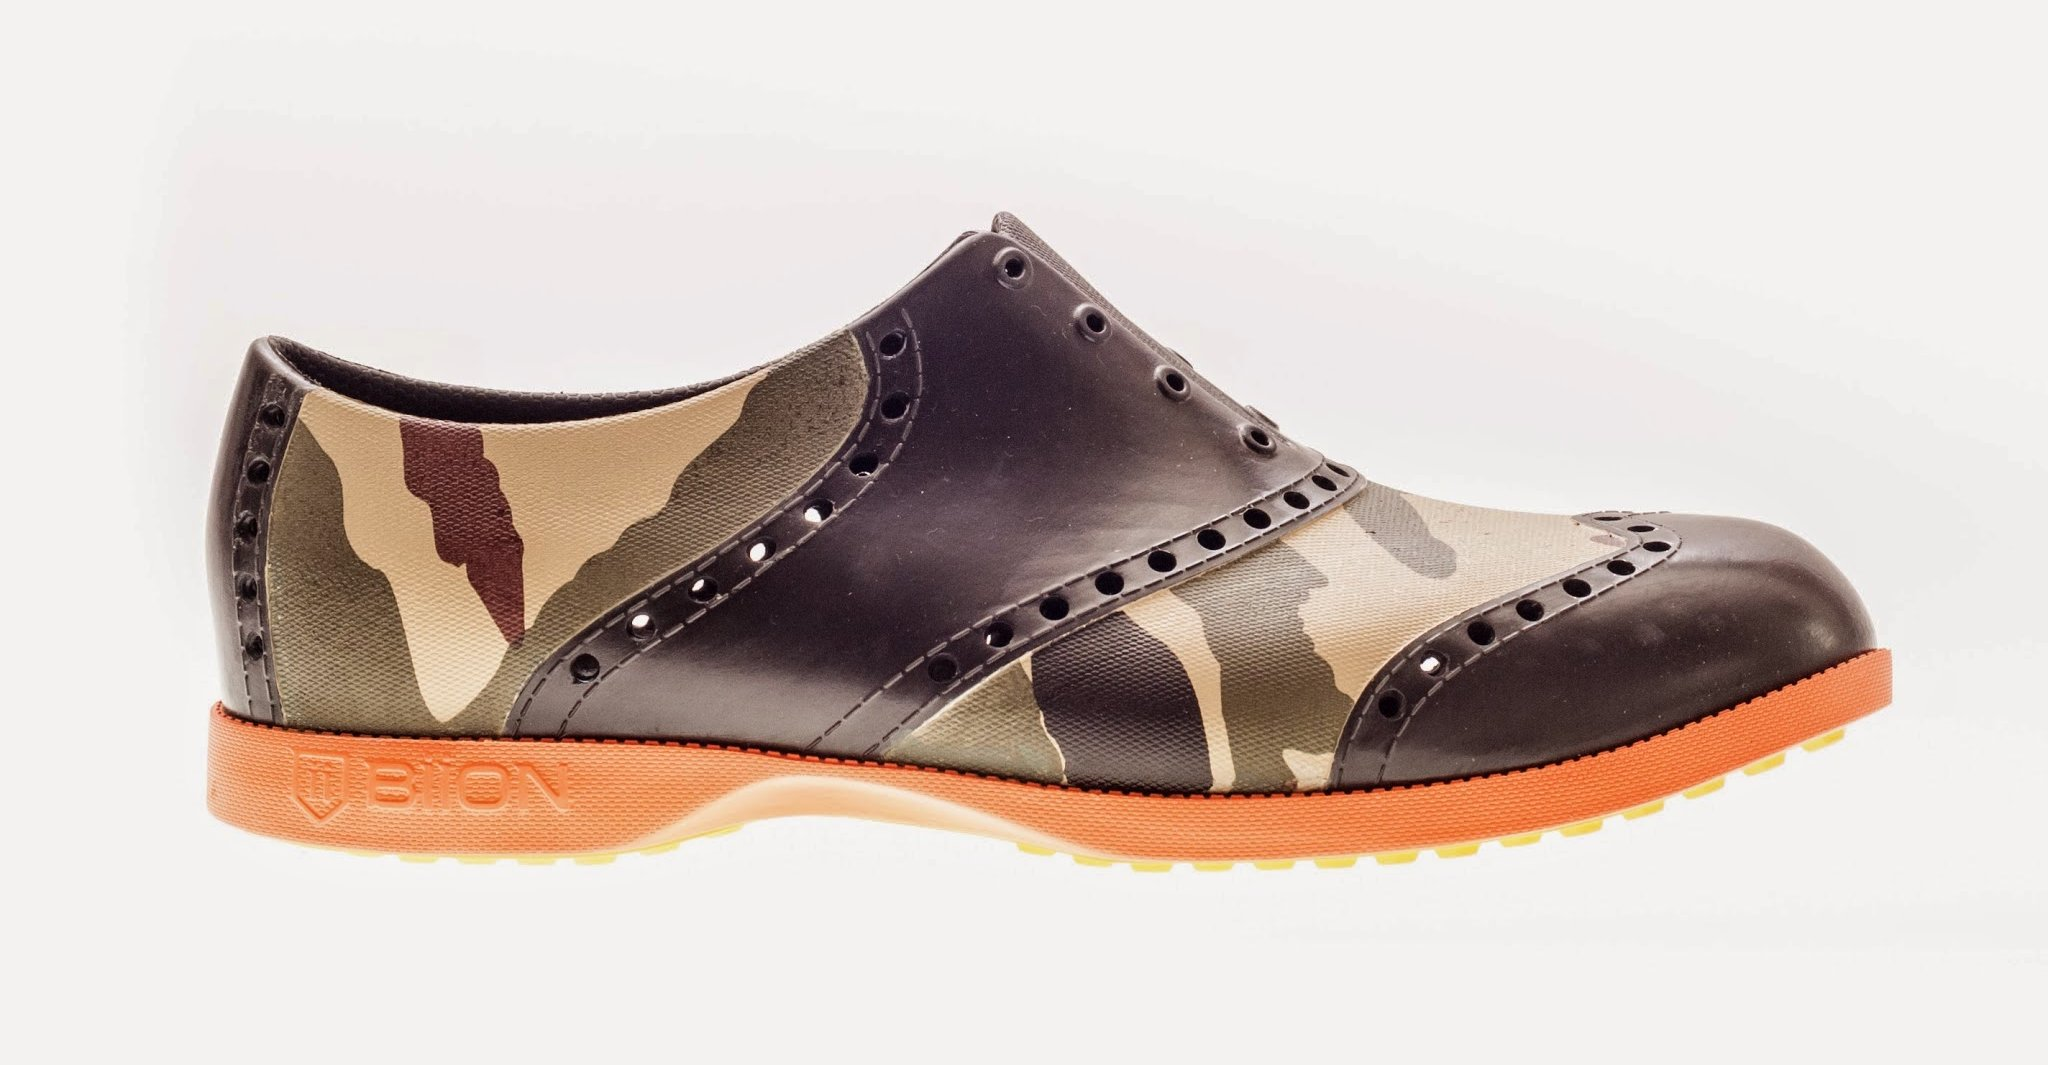 Biion Oxford Brogues 1 – golf shoes